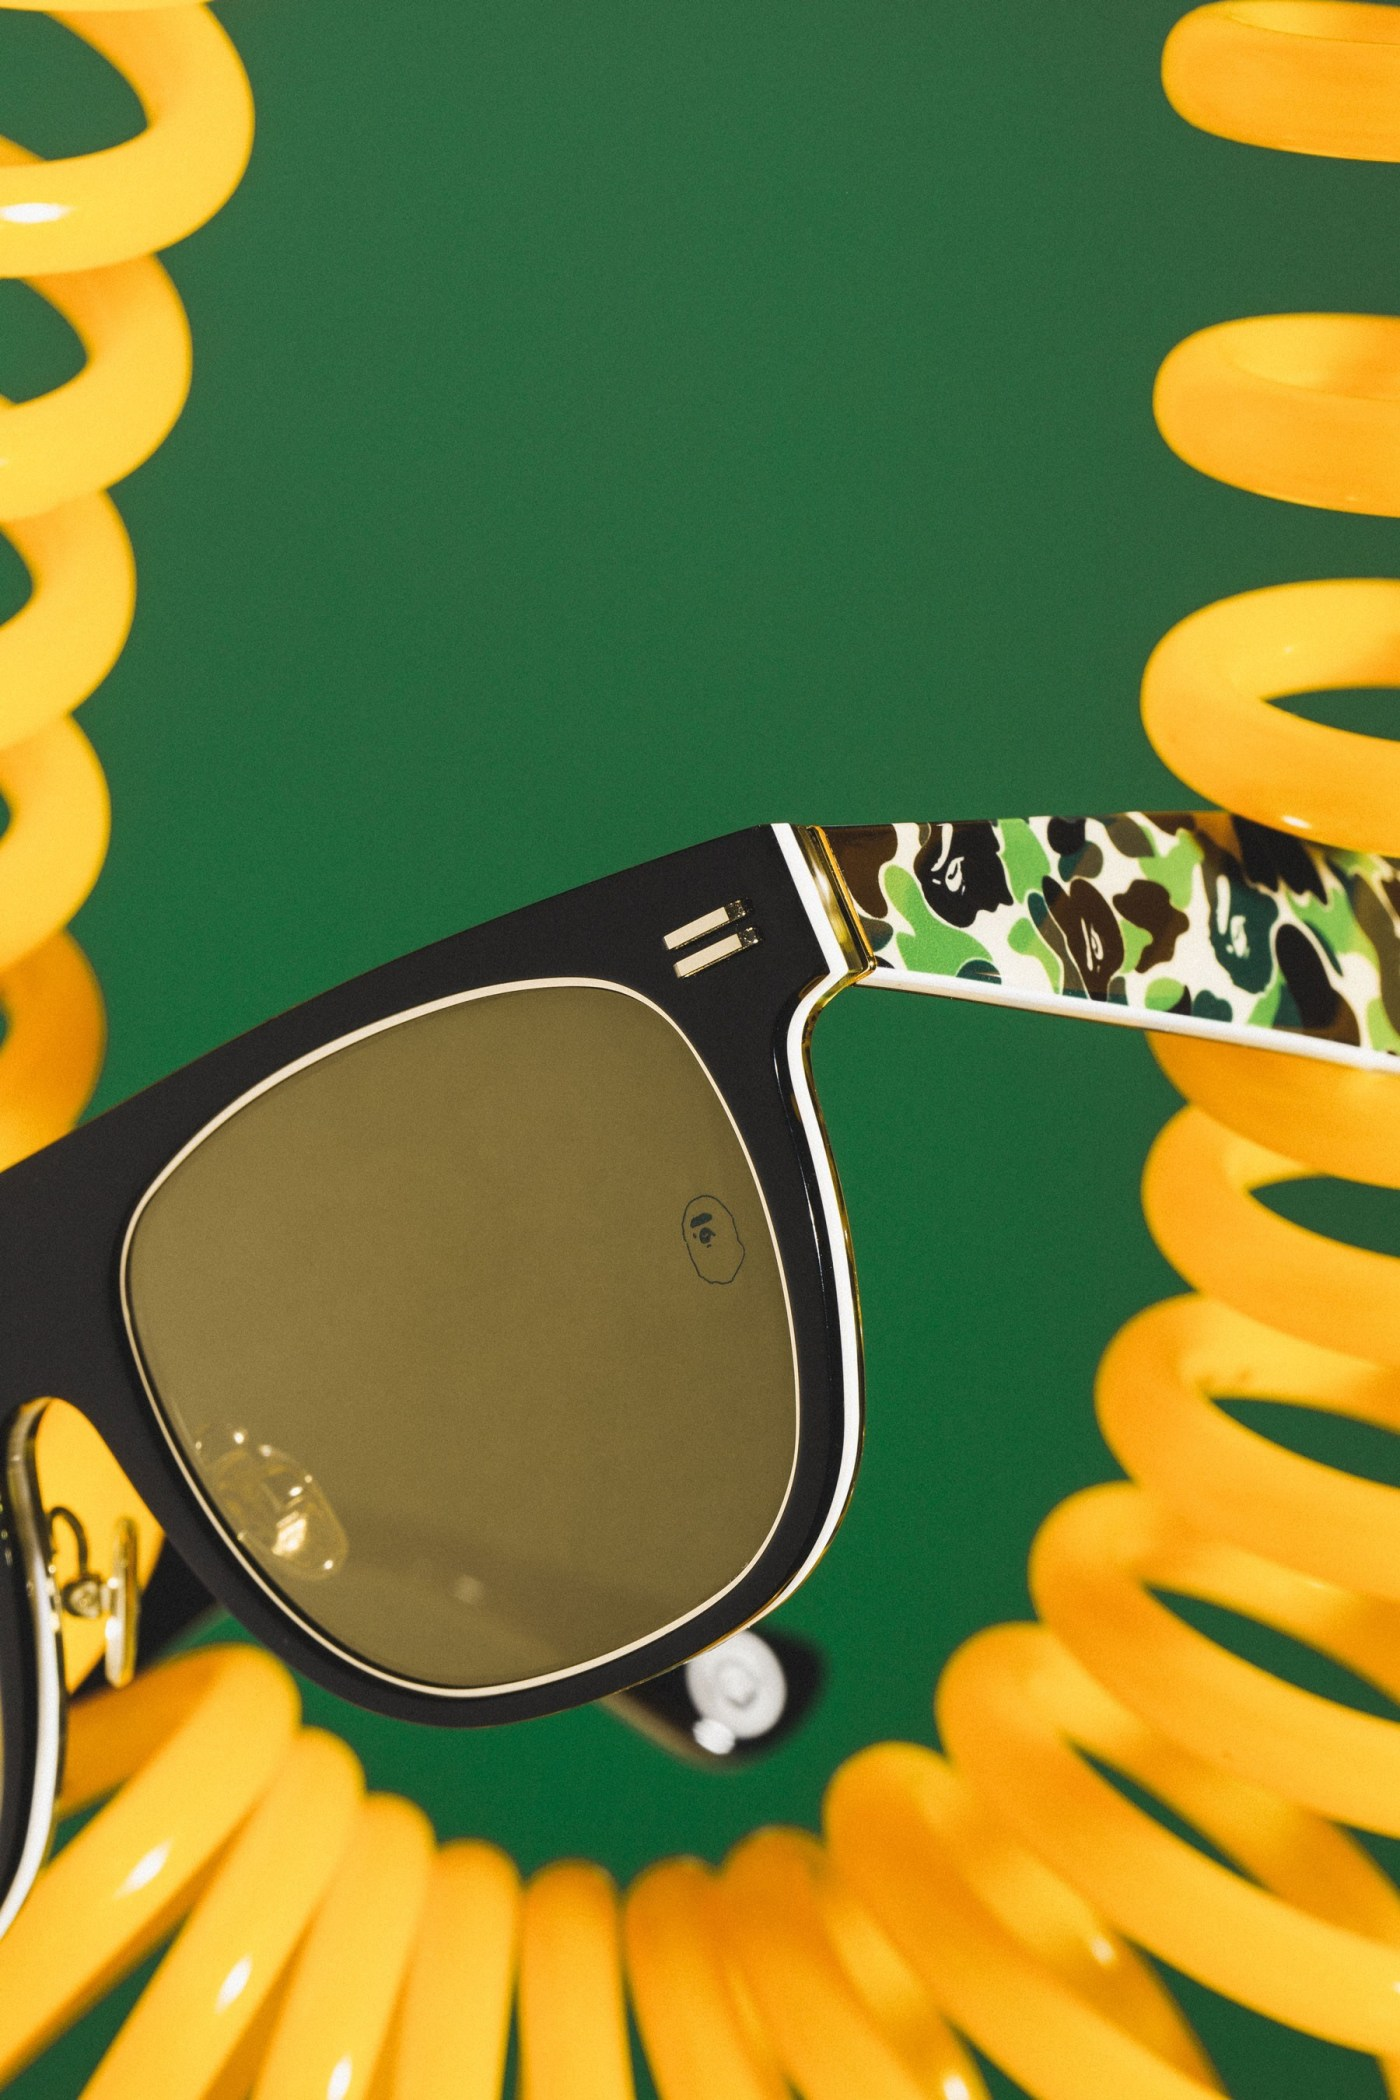 https___hypebeast.com_image_2019_07_bape-retrosuperfuture-eyewear-collection-2019-2.jpg